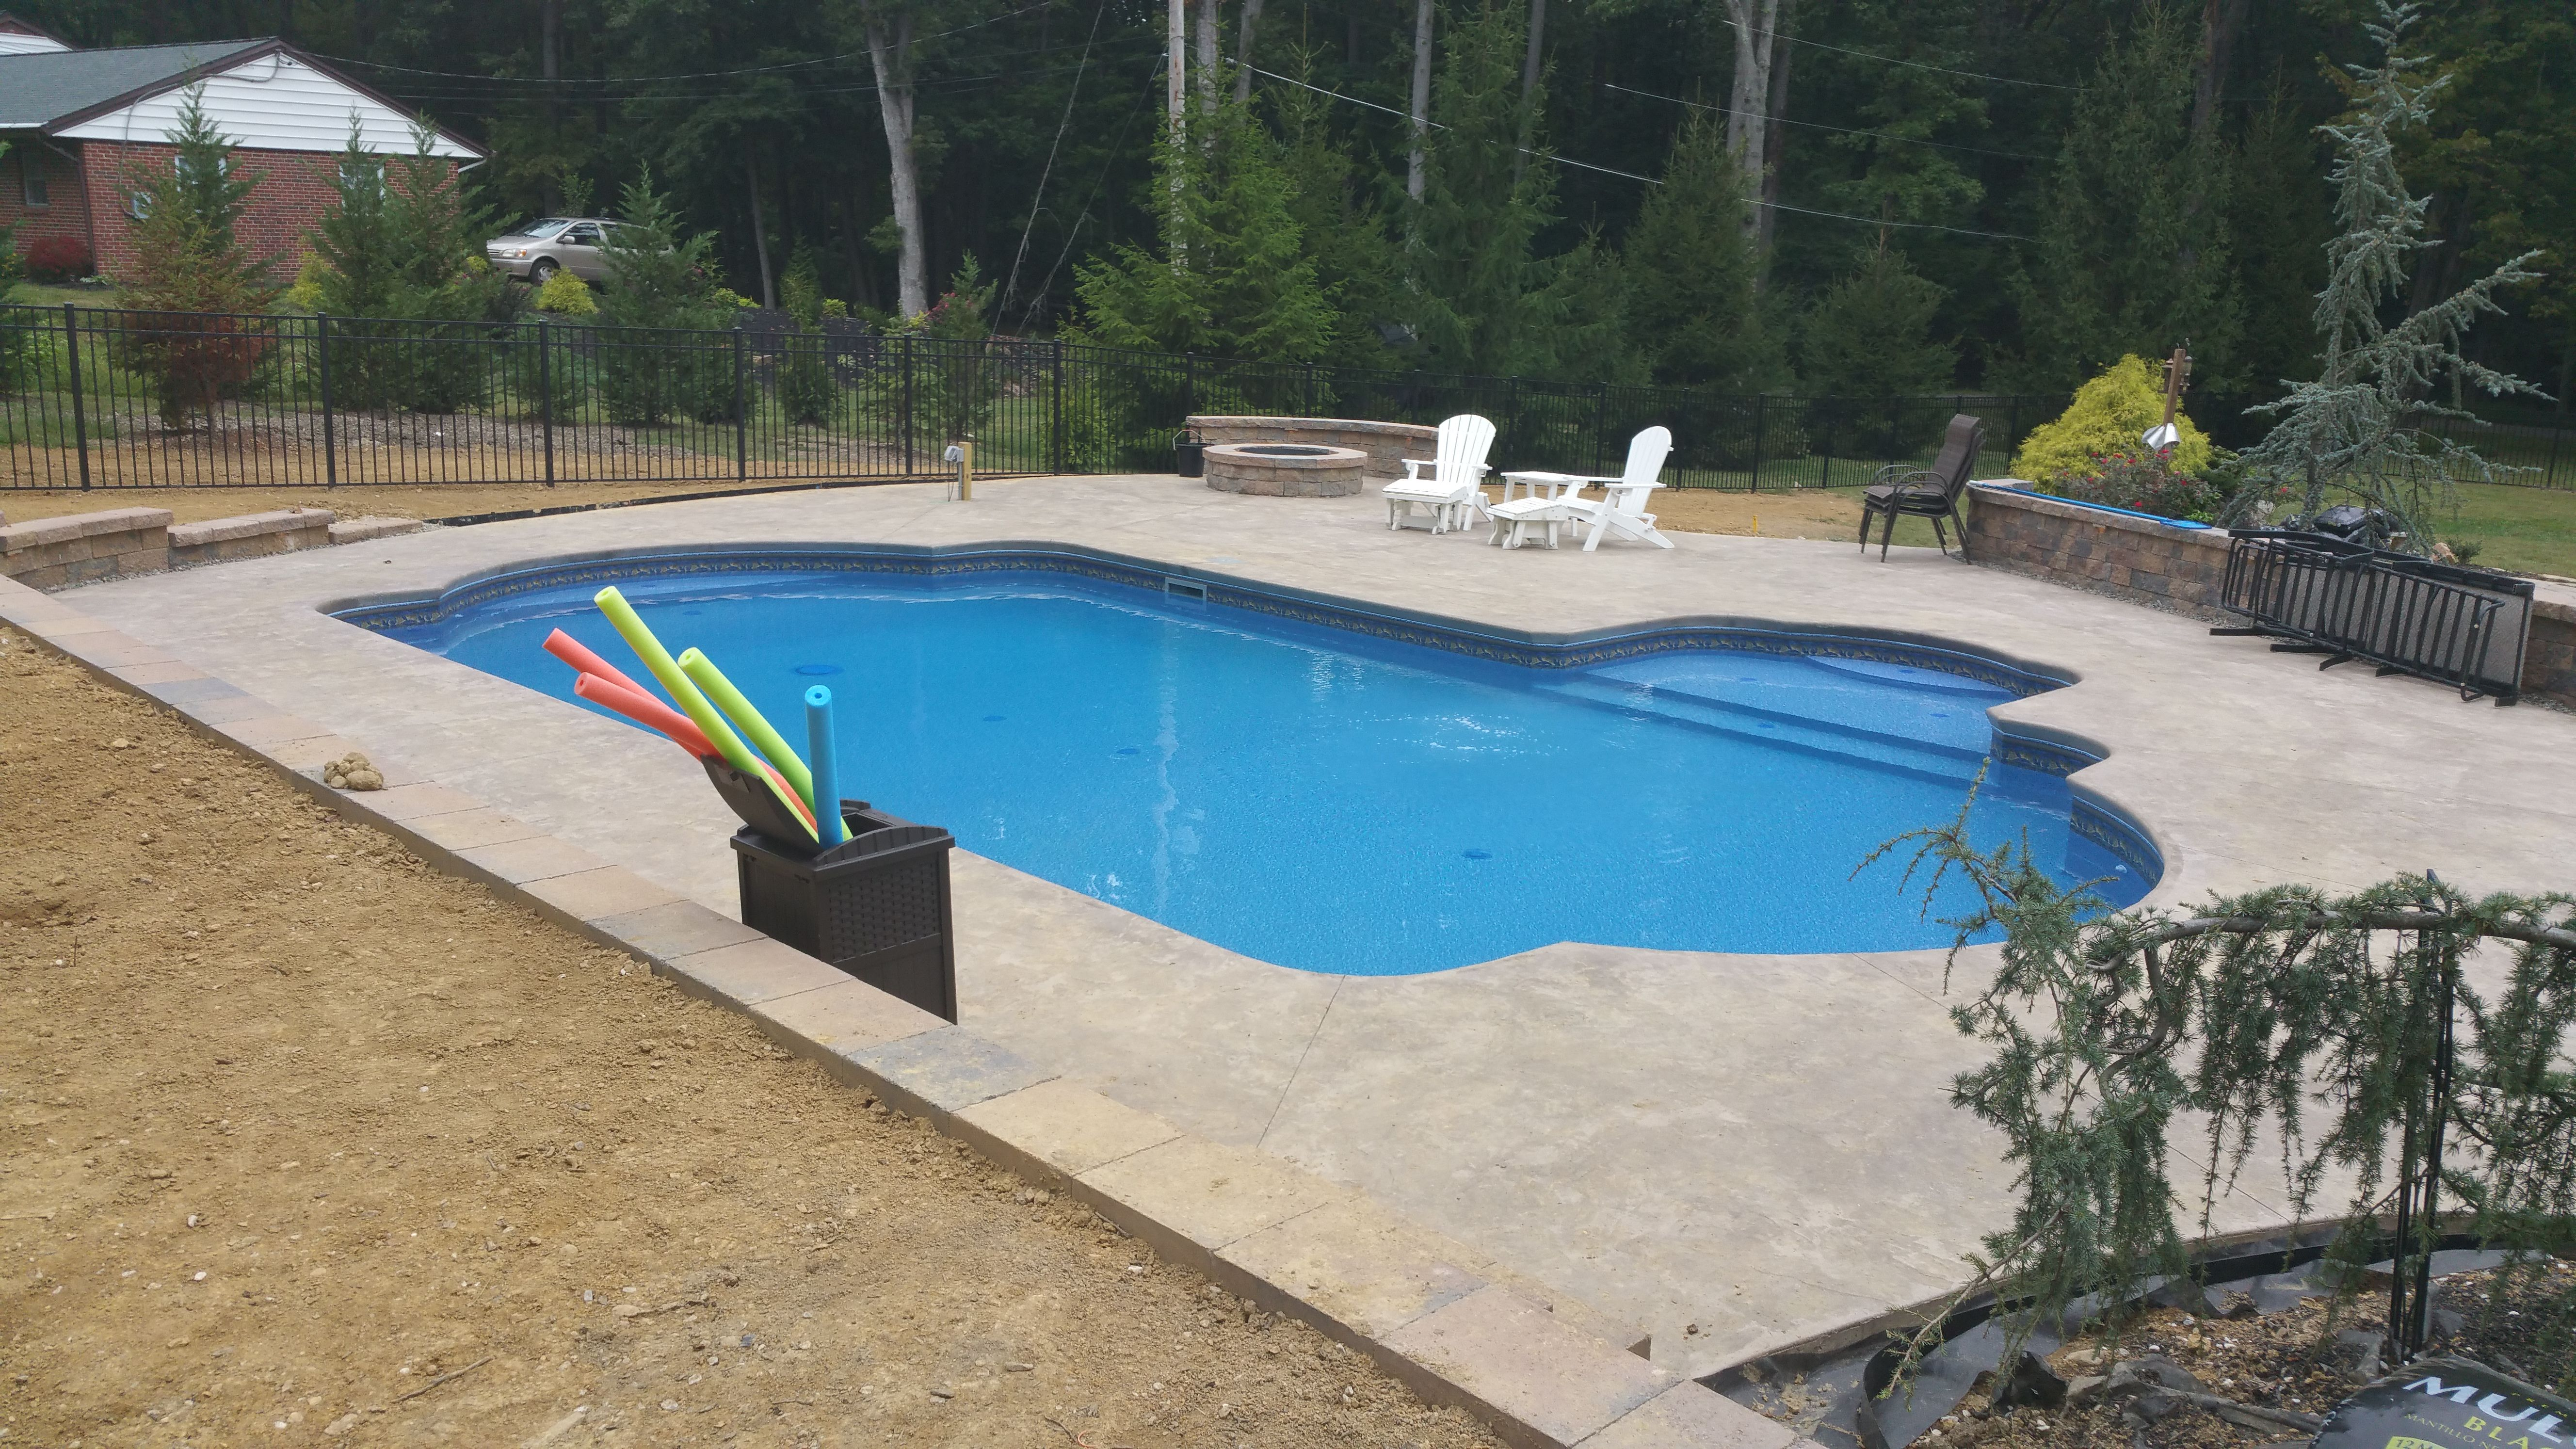 Vinyl Liner Pool With Tanning Ledge Cantilever Decking Retaining Wall Sitting Wall Floor Cleaning System Stamped Conc Pool Vinyl Pool Fire Pit Landscaping